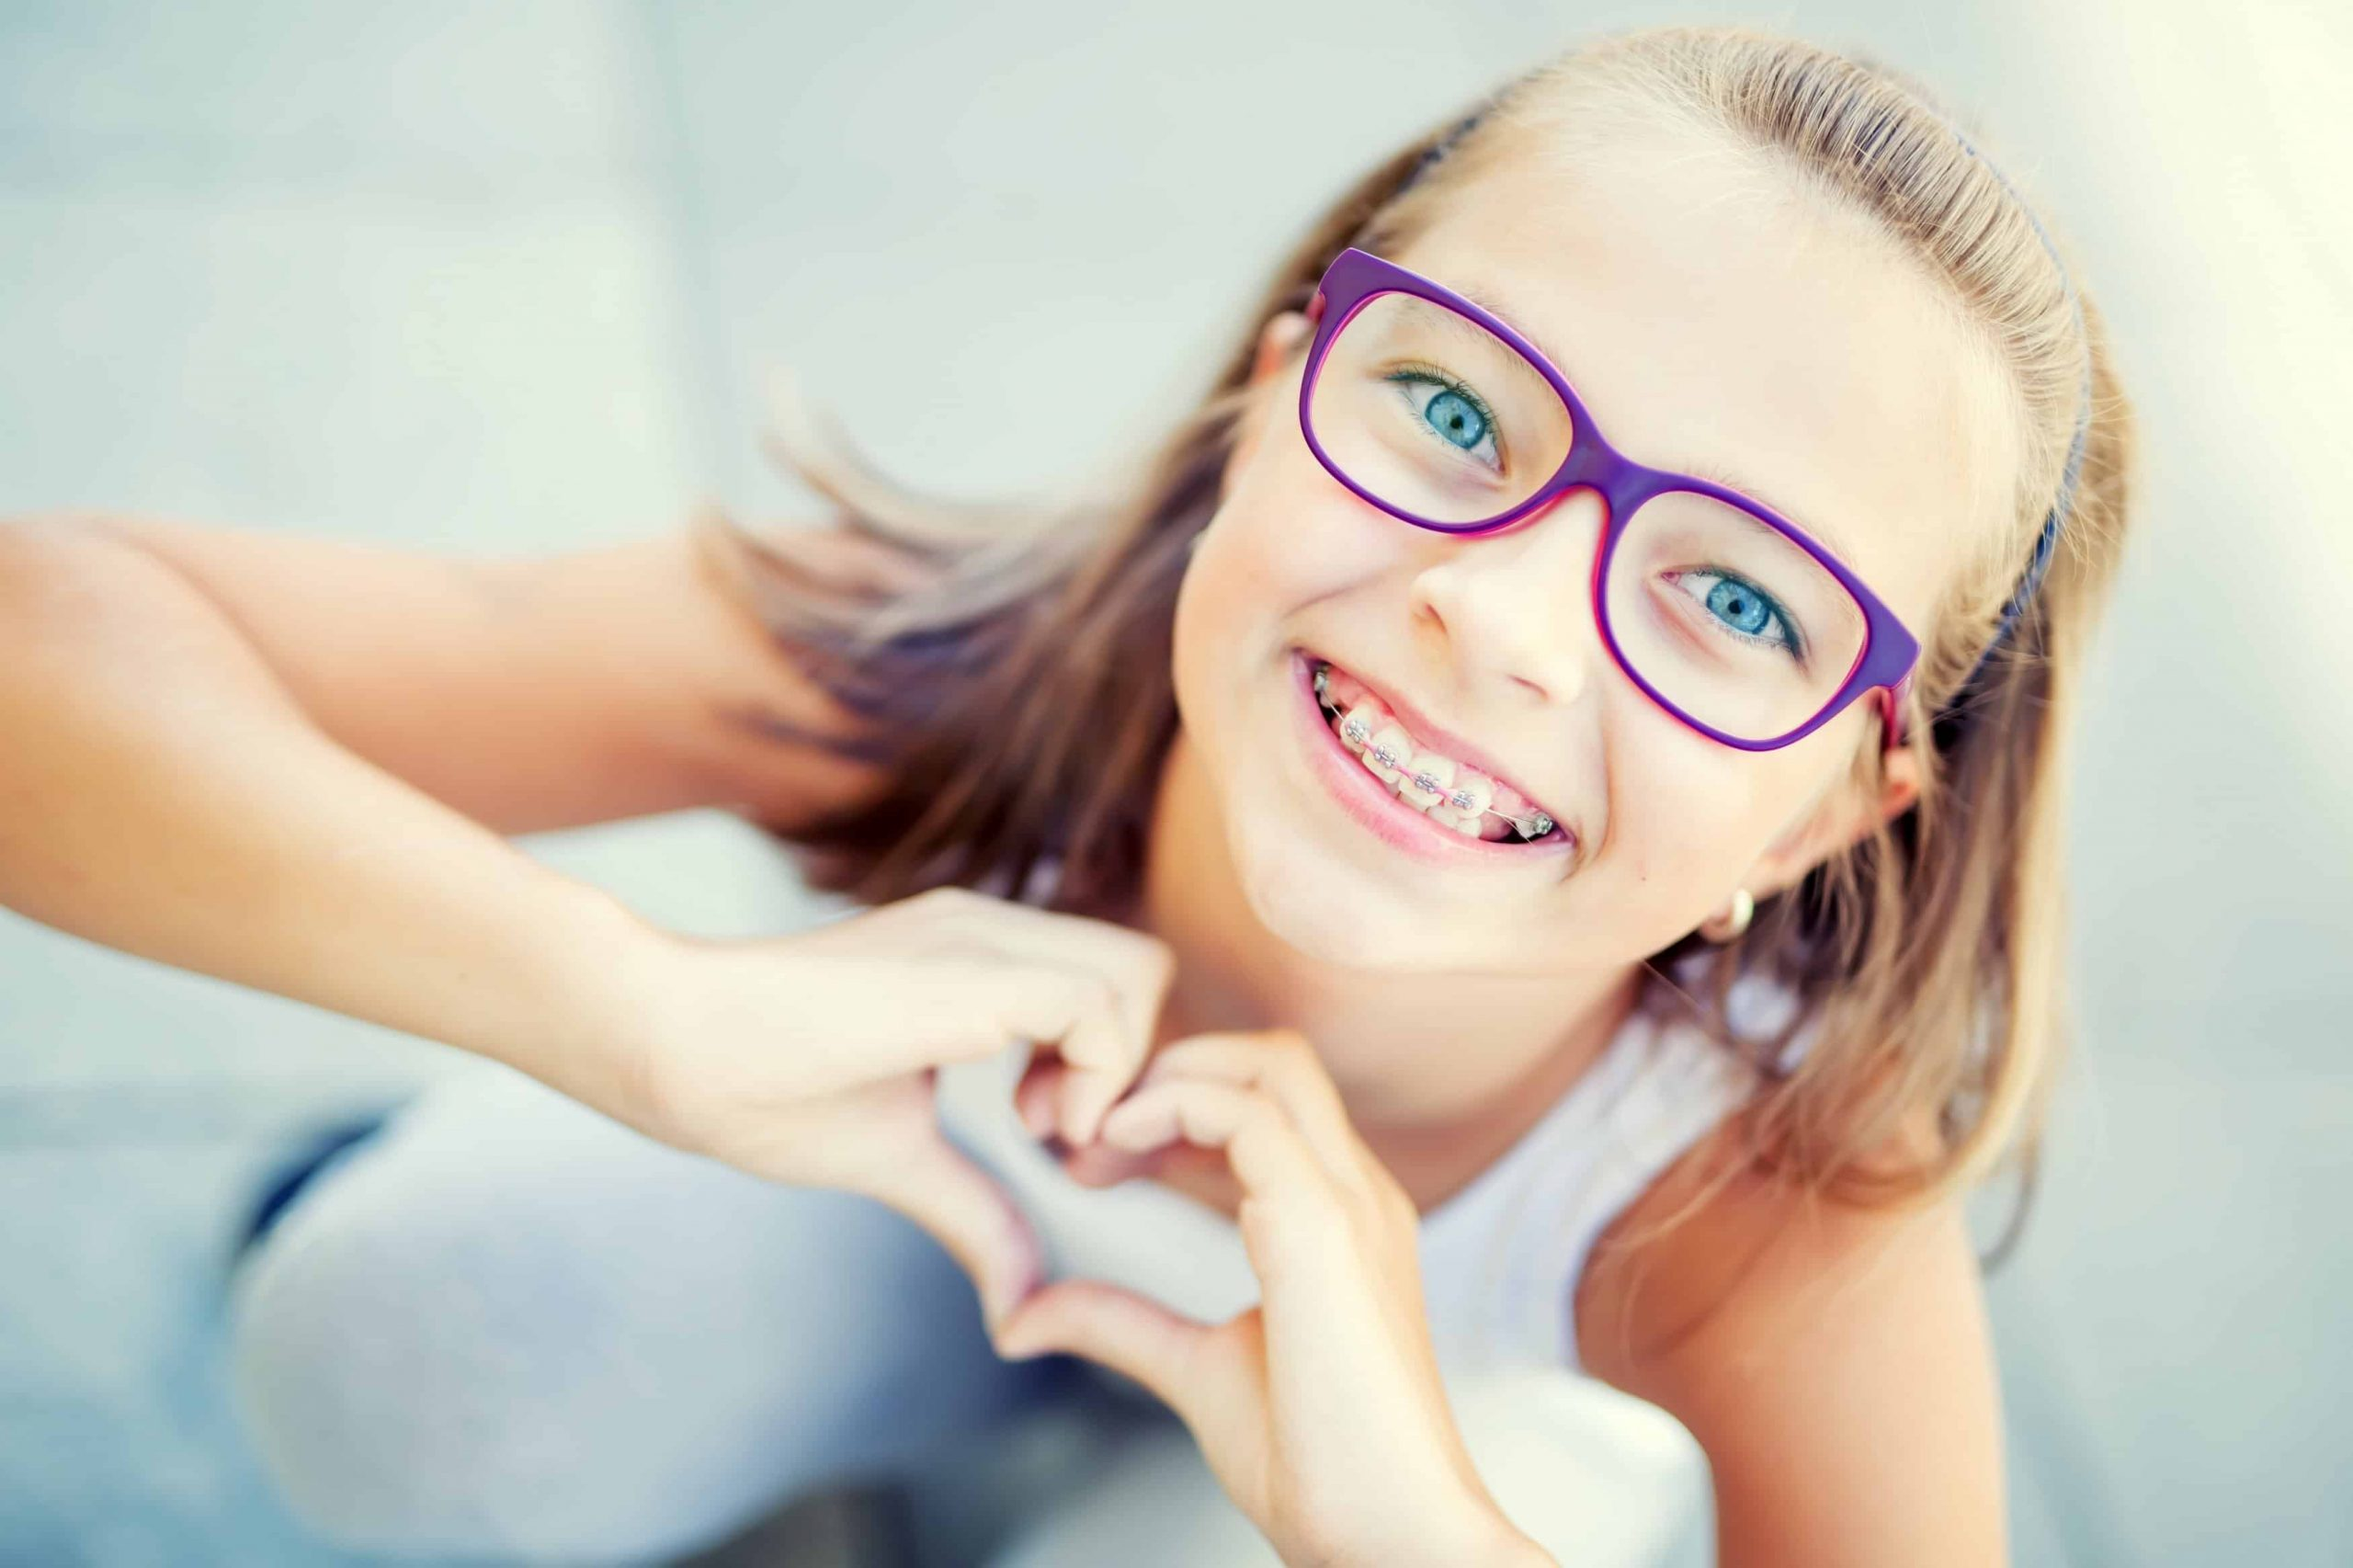 We invest in dental health, why not mental health?